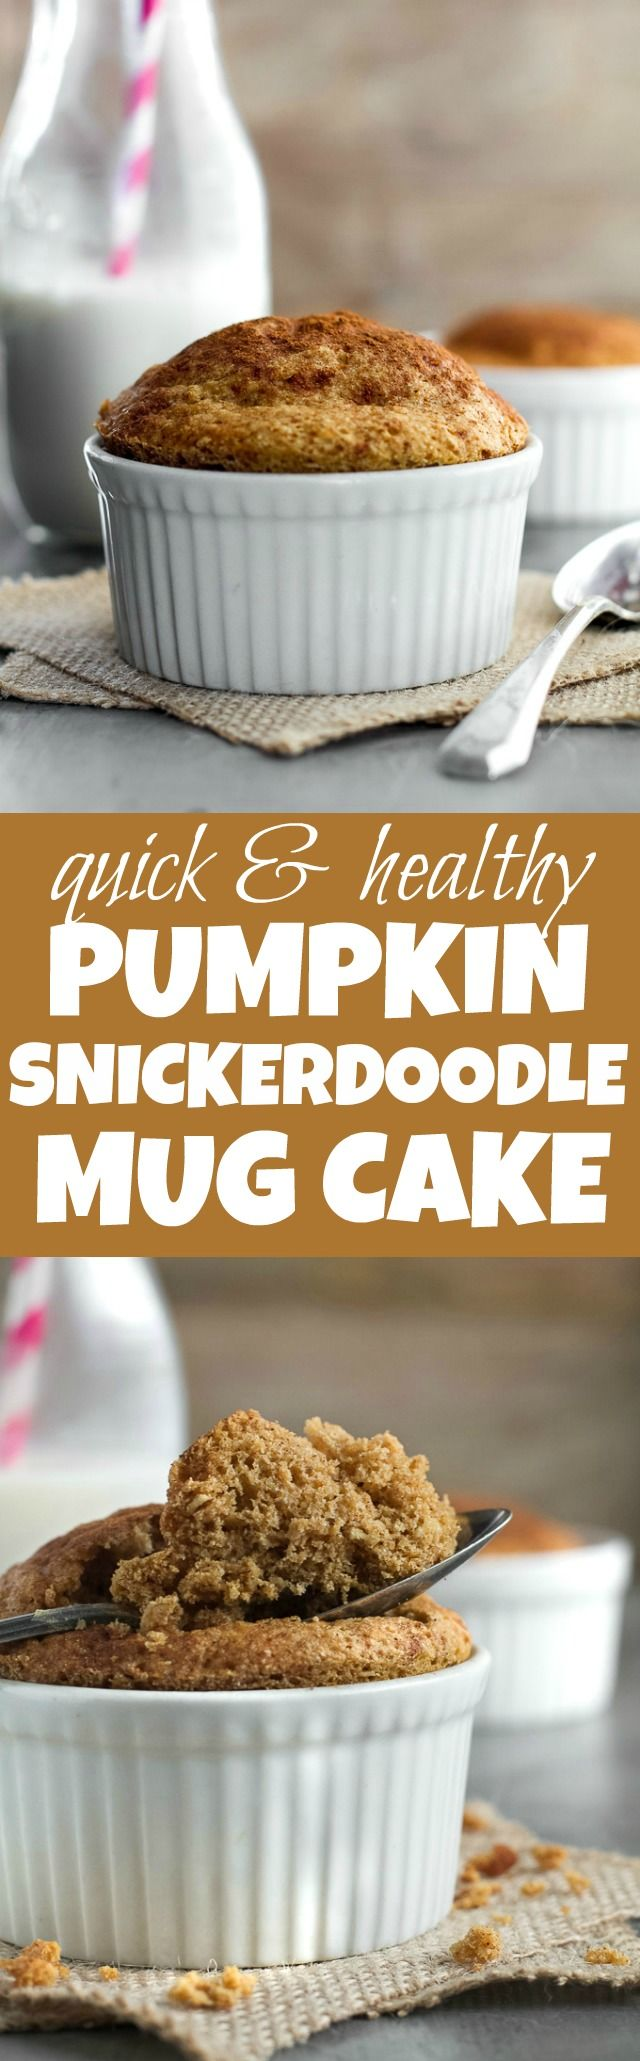 Pumpkin Snickerdoodle Mug Cake - just 5 minutes and a handful of healthy ingredients will give you this delicious gluten-free and paleo snack! | runningwithspoons.com